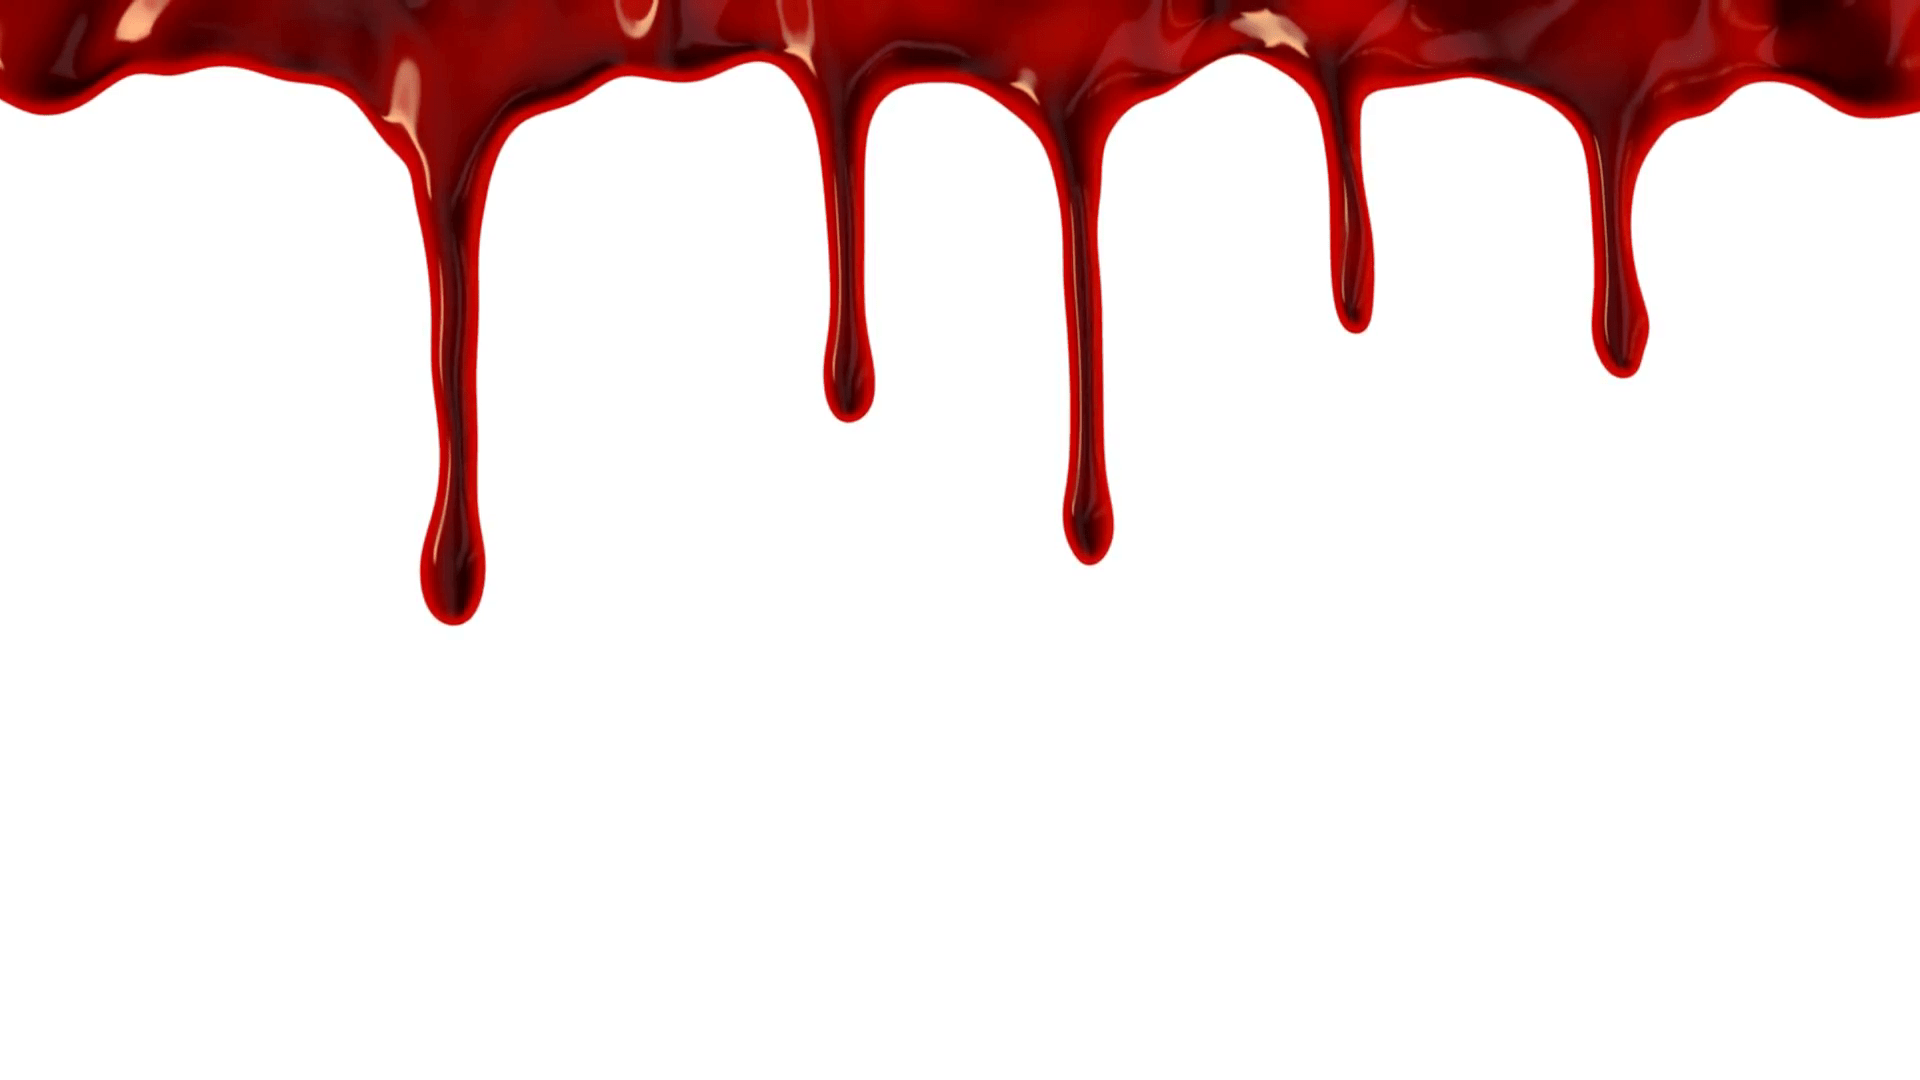 Blood Dripping Drawing | Free download on ClipArtMag